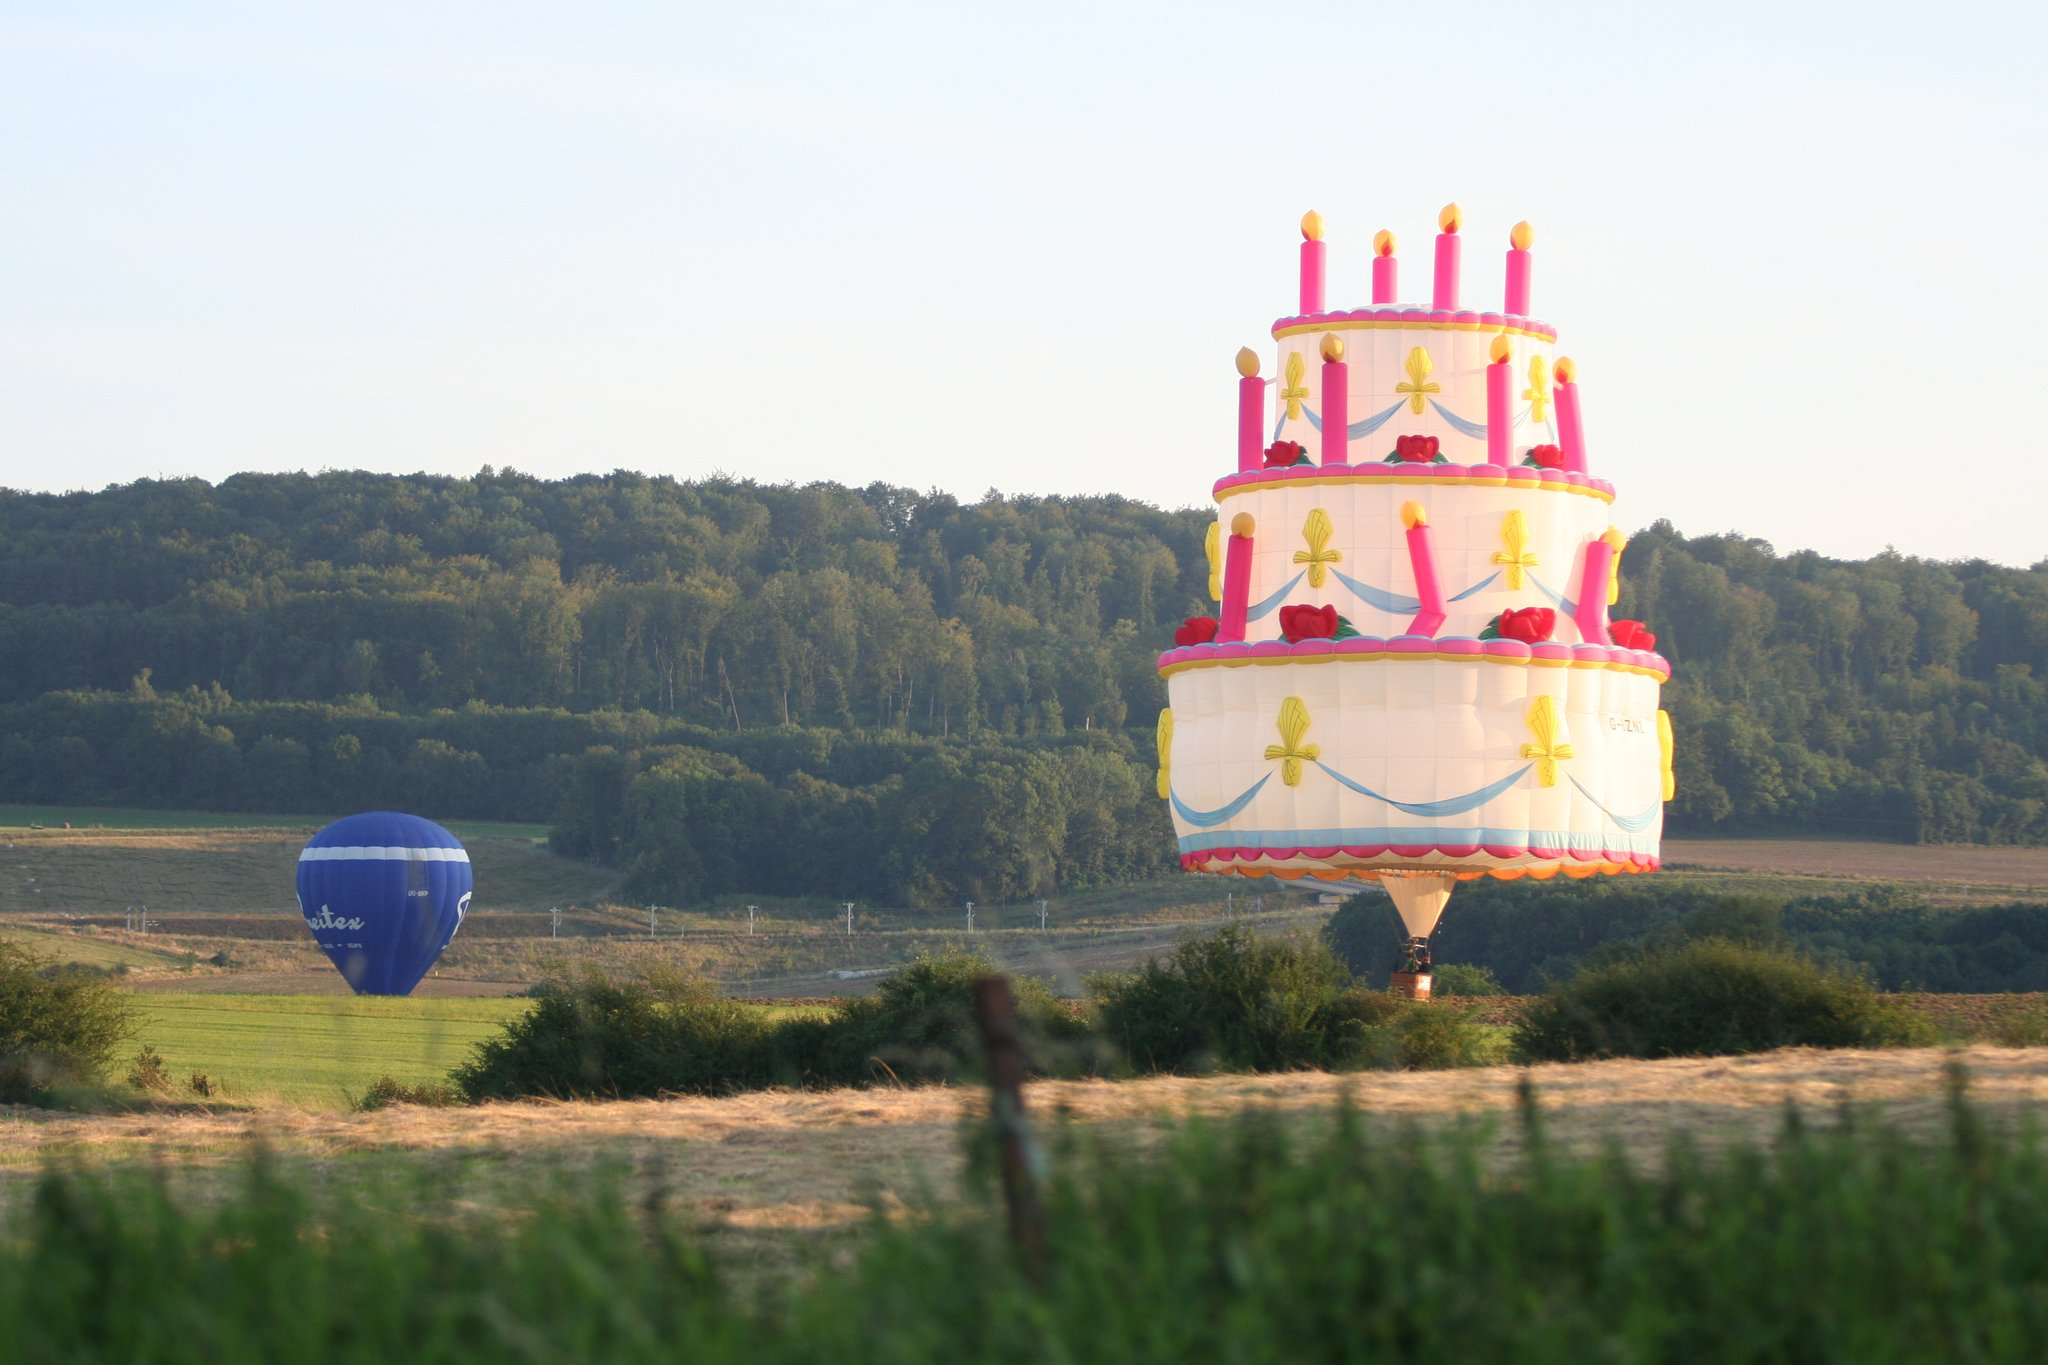 Birthday Cake Hot Air Balloon. Image credit Bristol International Balloon Fiesta